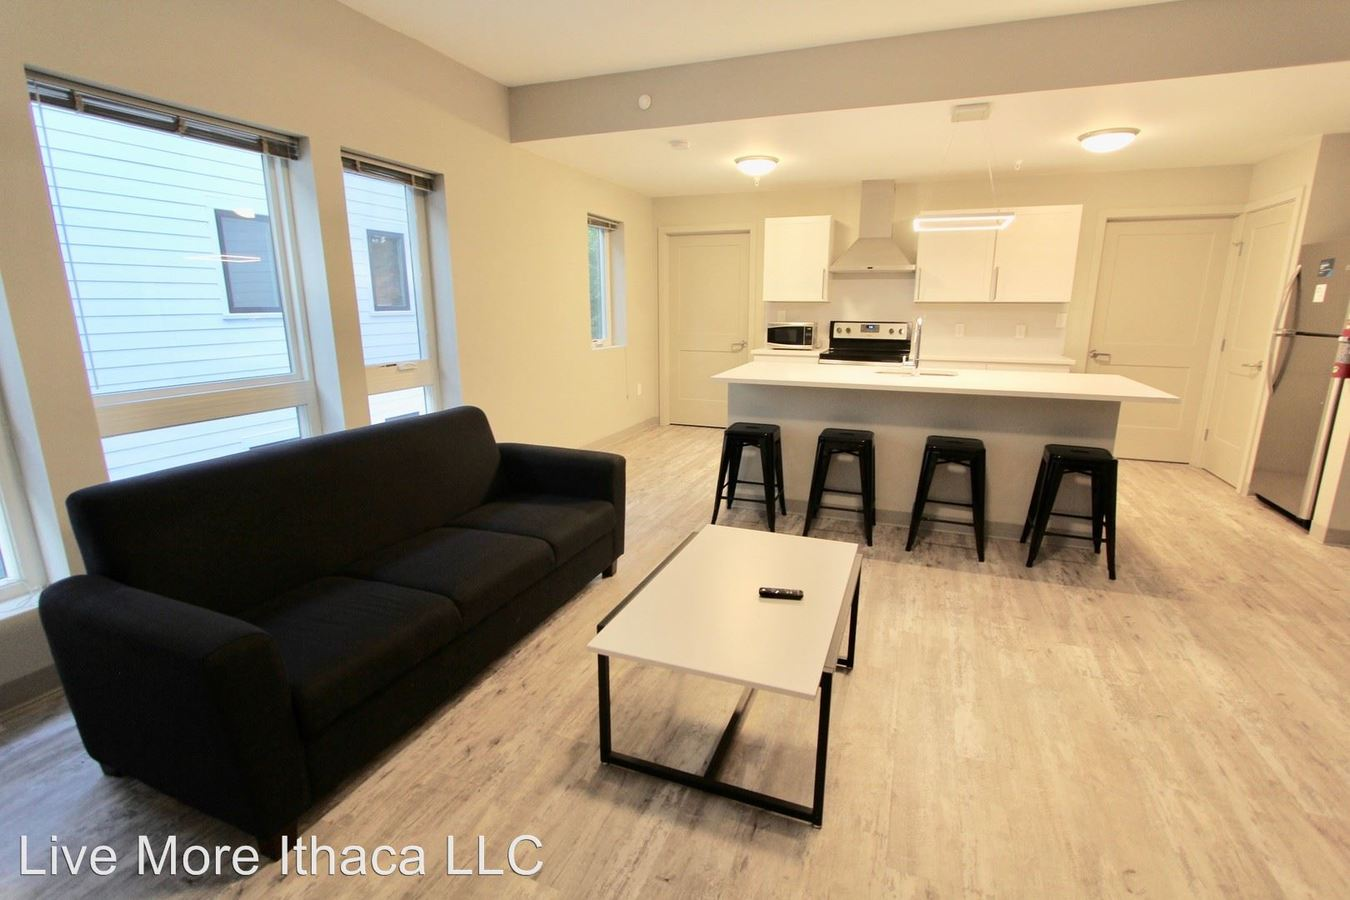 4 Bedrooms 2 Bathrooms Apartment for rent at 112 Summit Ave in Ithaca, NY